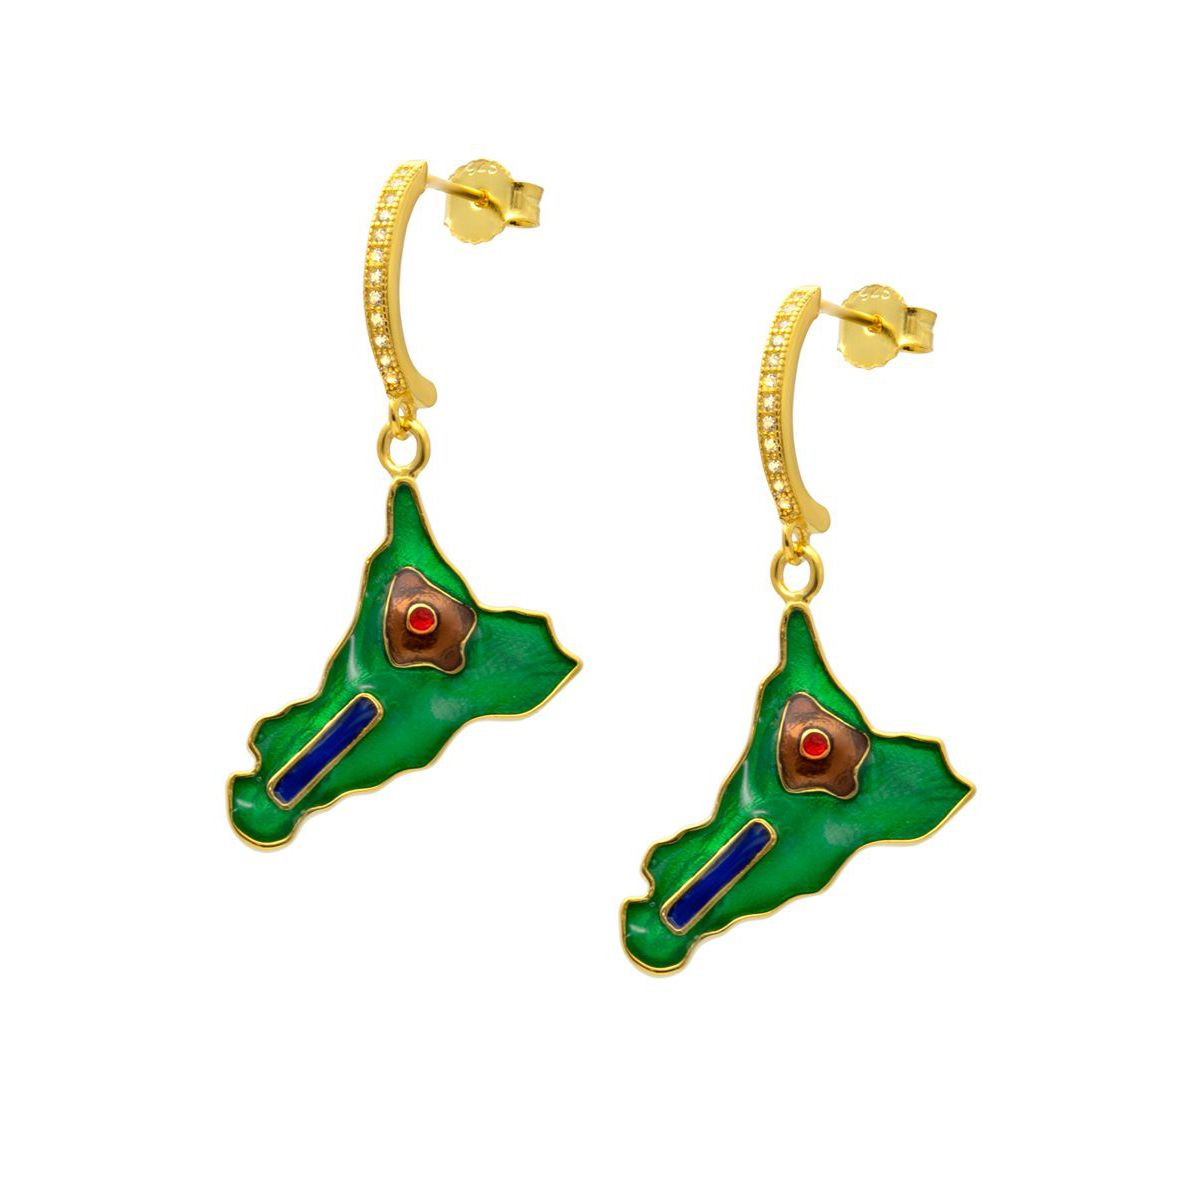 NAIL SICILY GOLD EARRINGS Green M'AMI SICILY JEWELS